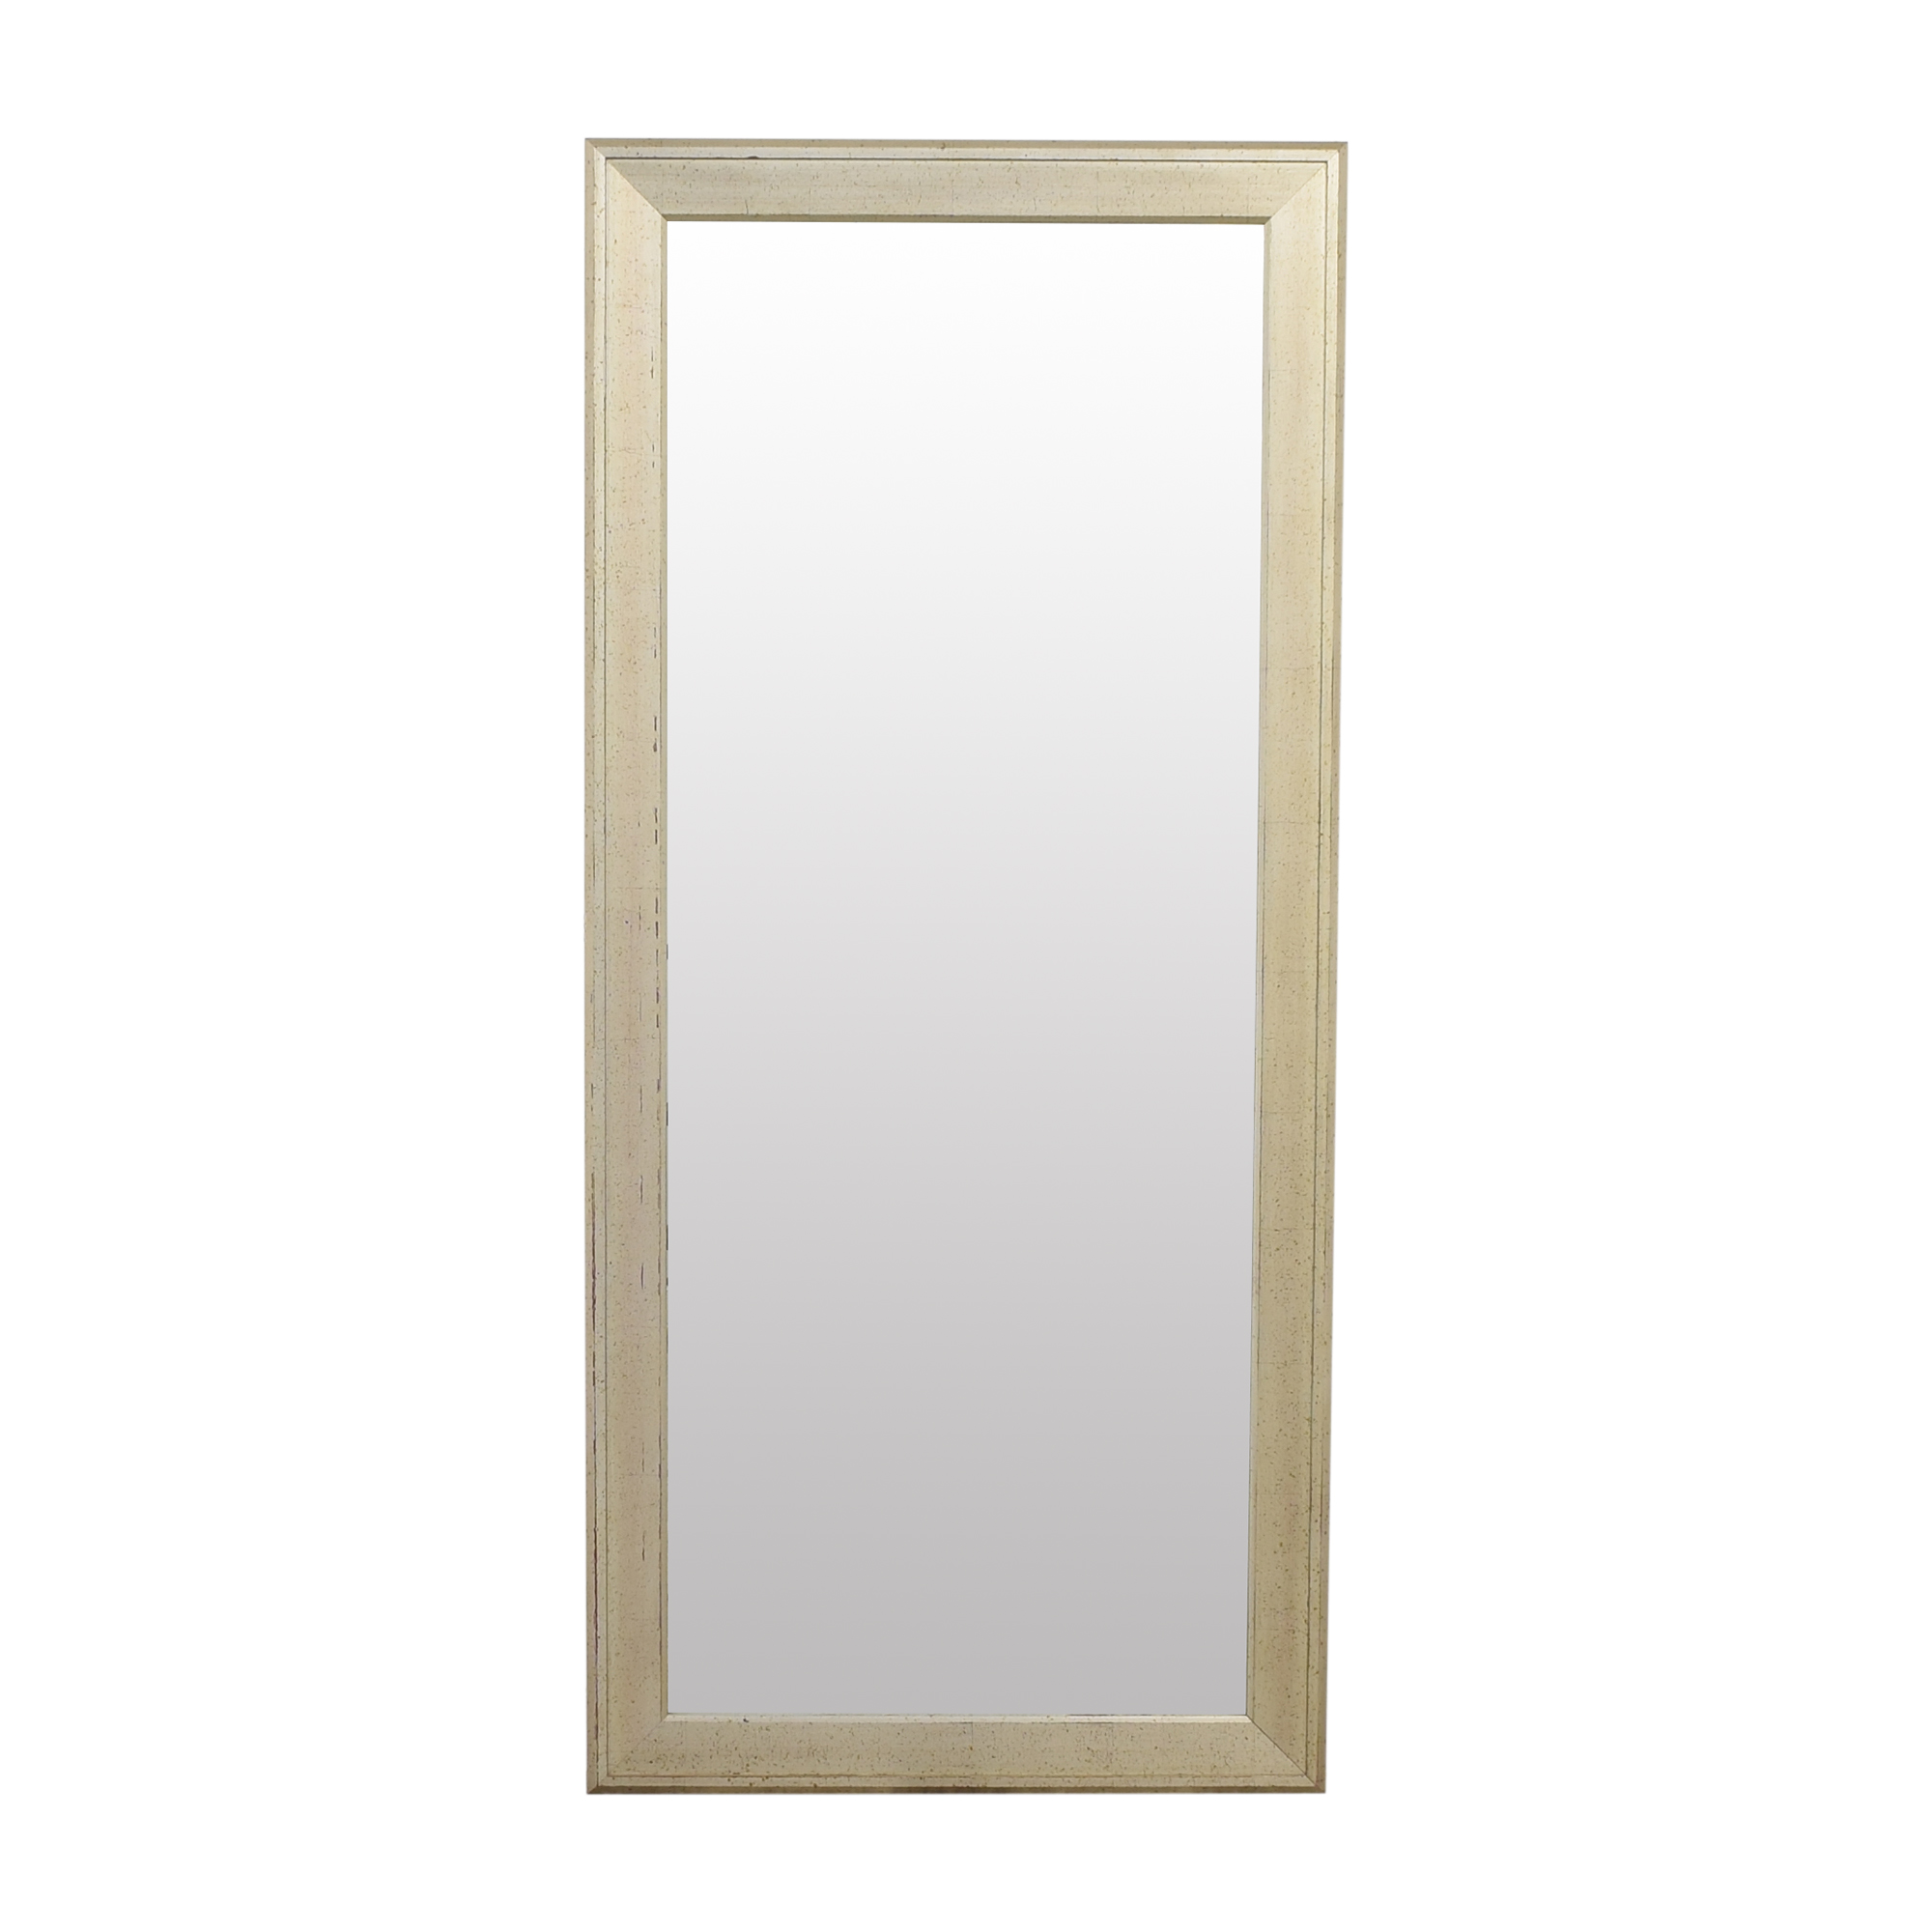 Framed Wall Mirror on sale